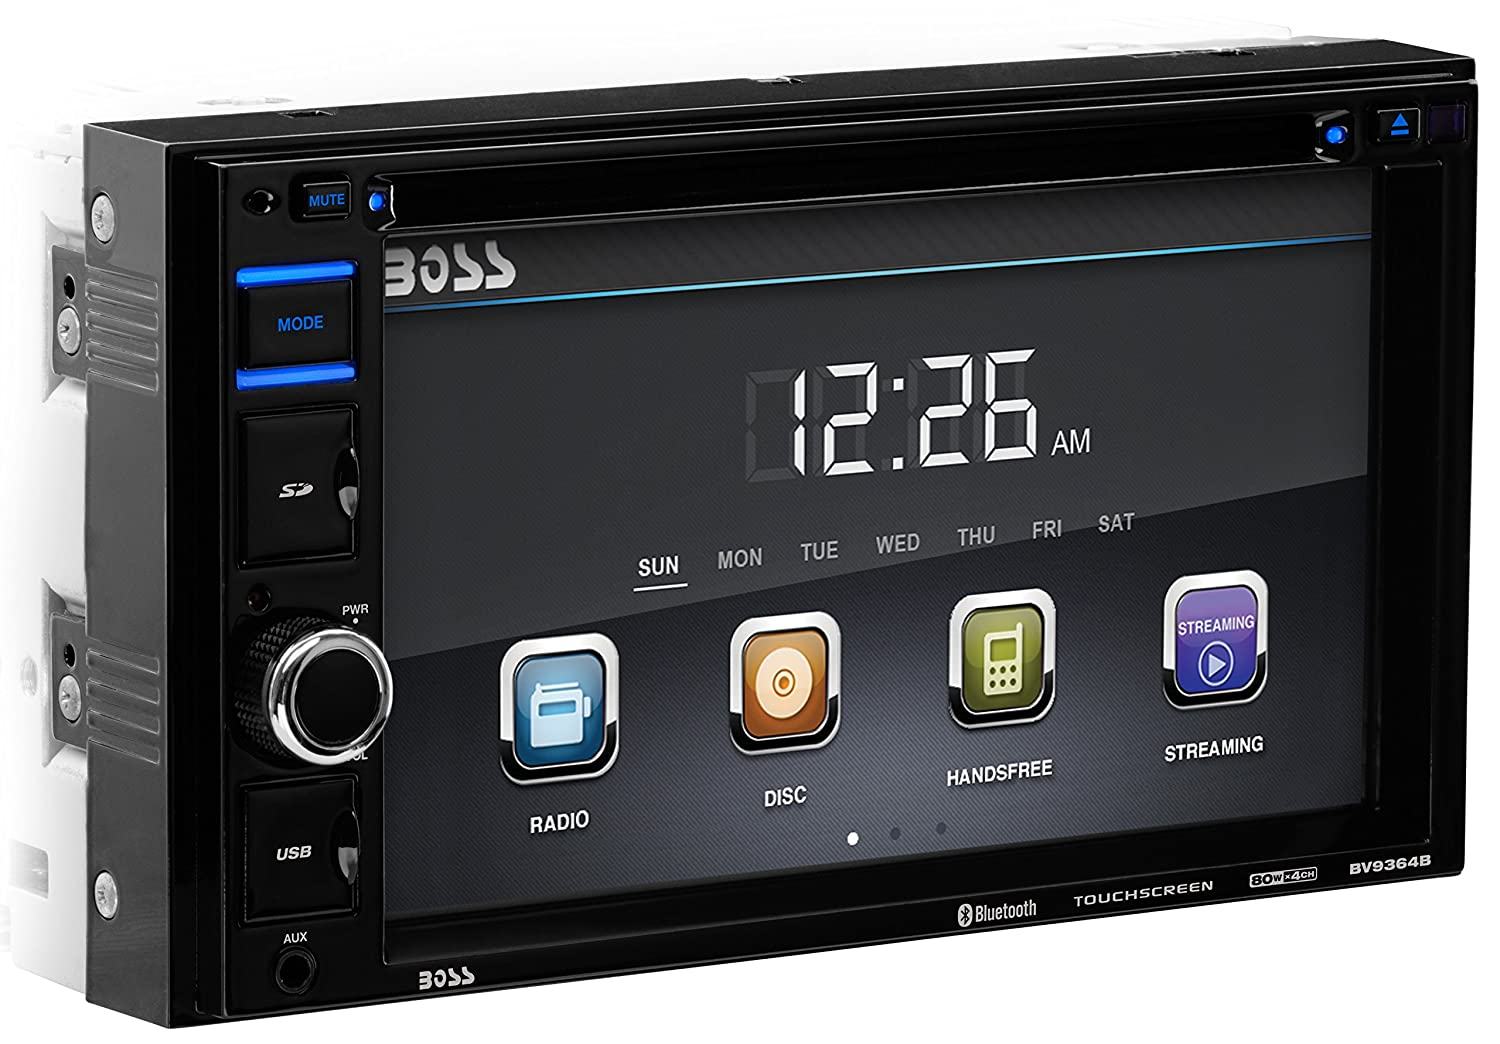 amazon com boss audio bv9364b car stereo dvd player double din rh amazon com